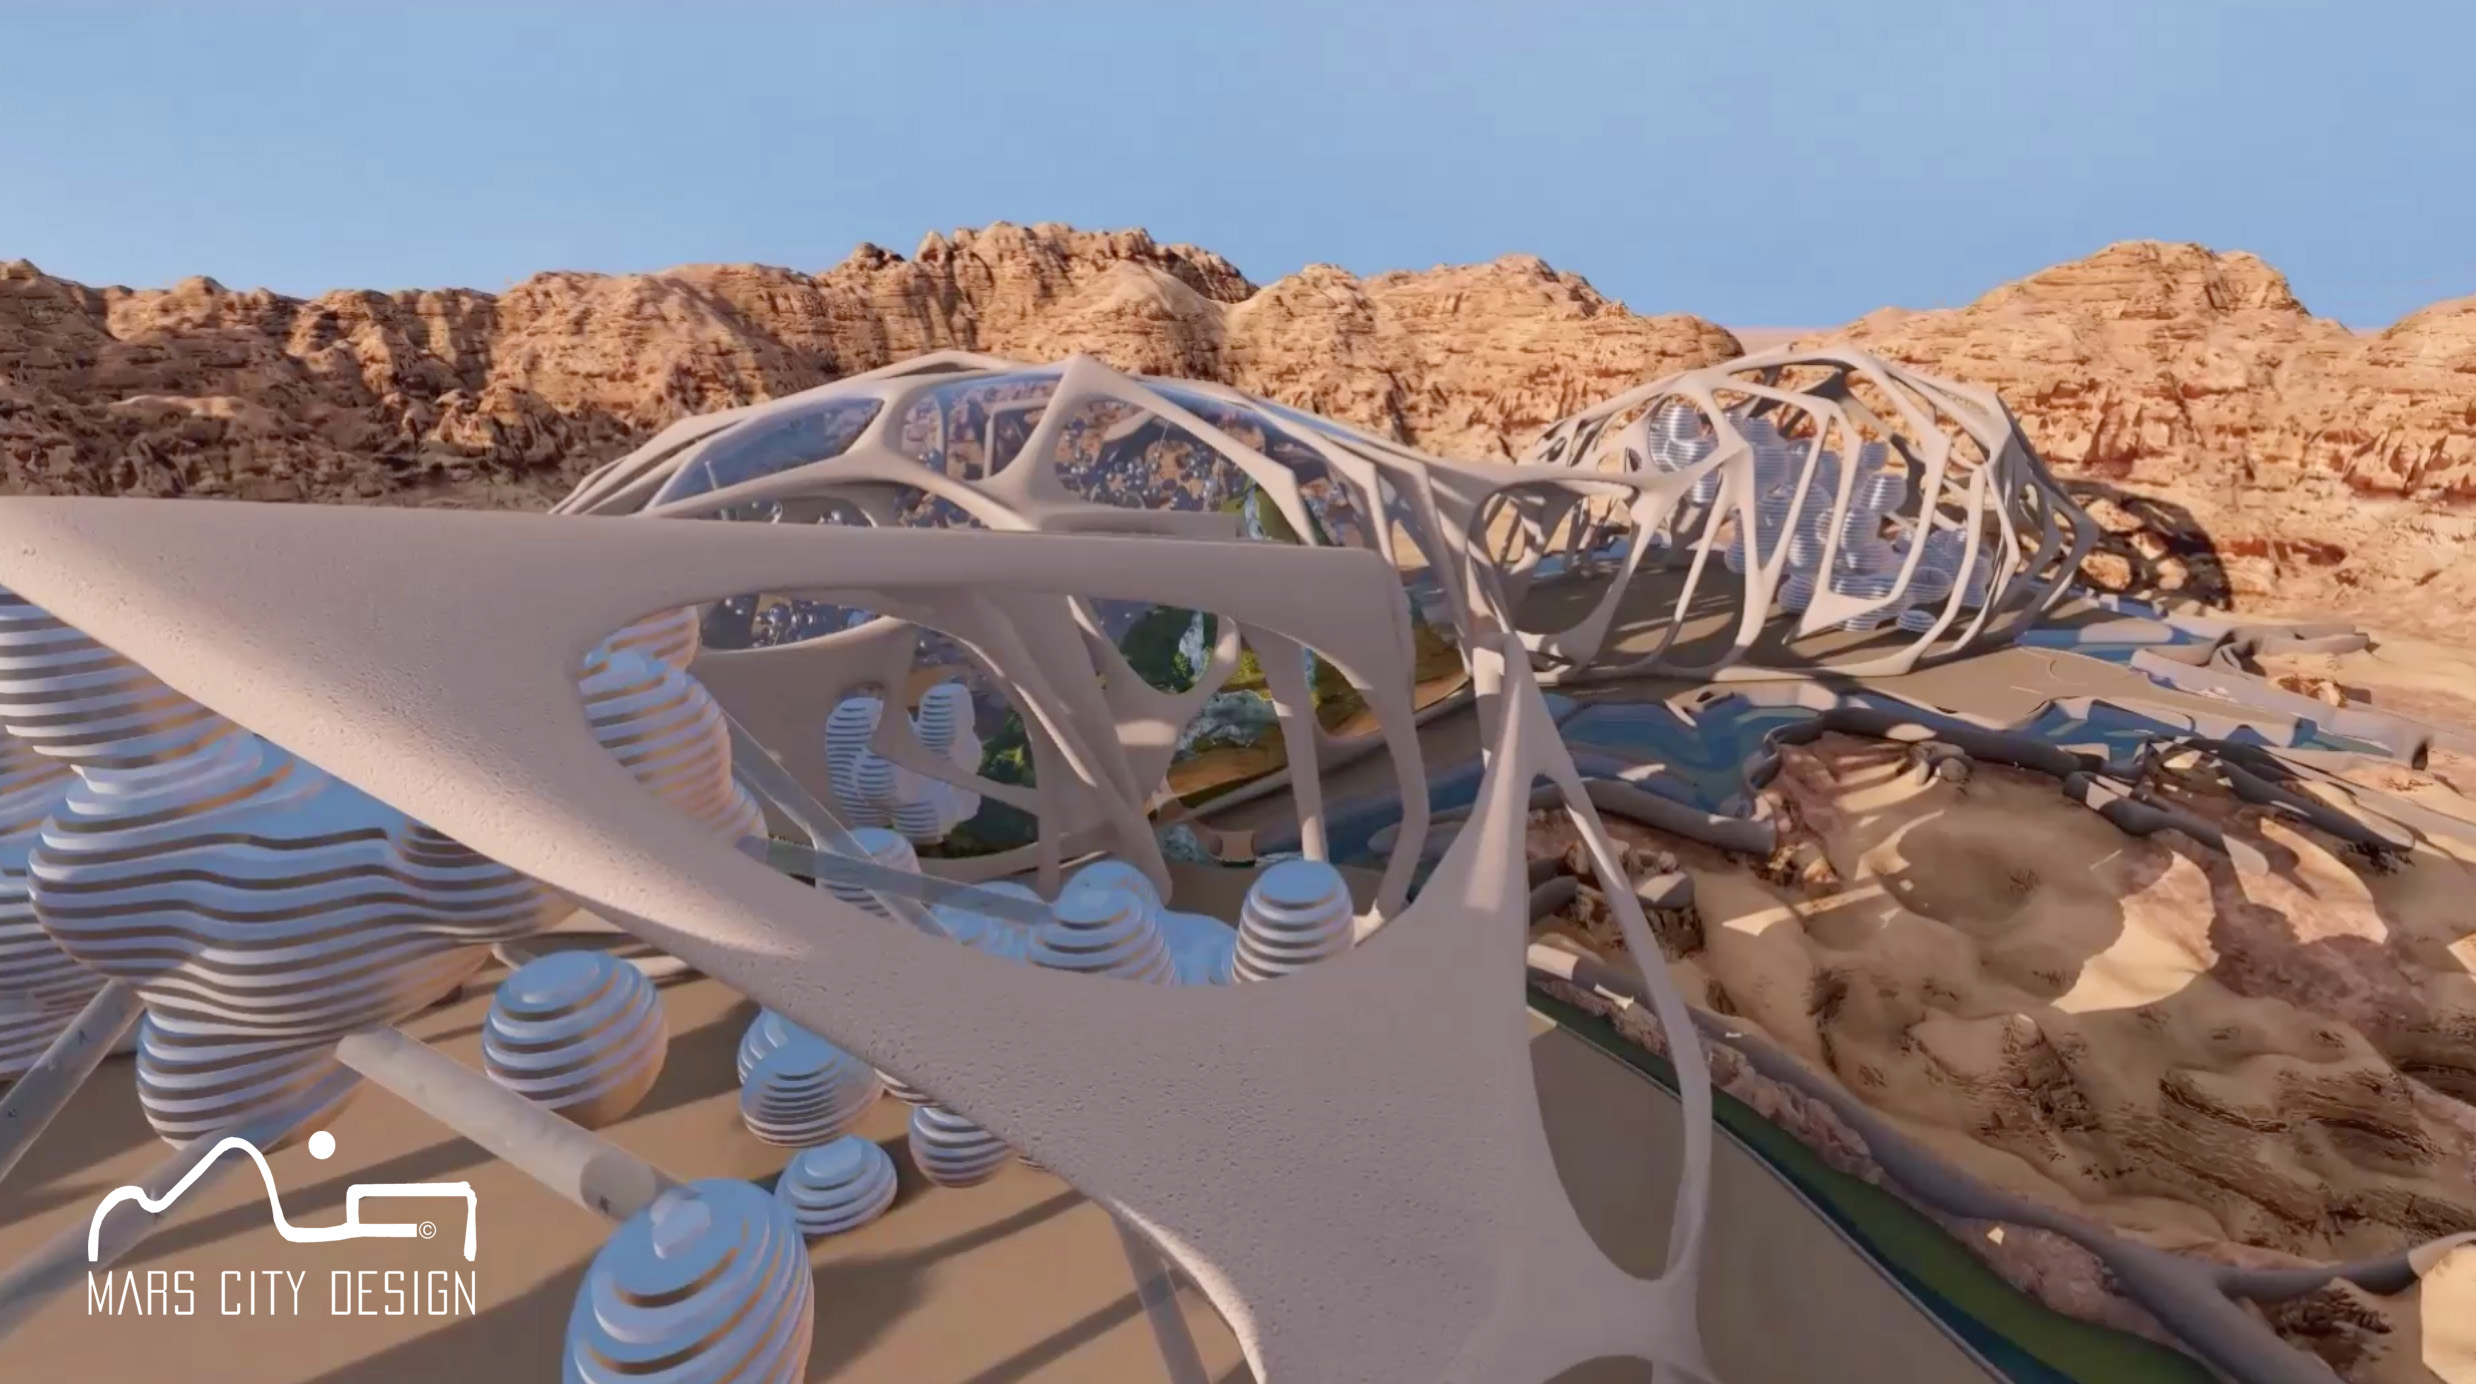 'Neuro'; a finalist in the Mars City Design competition